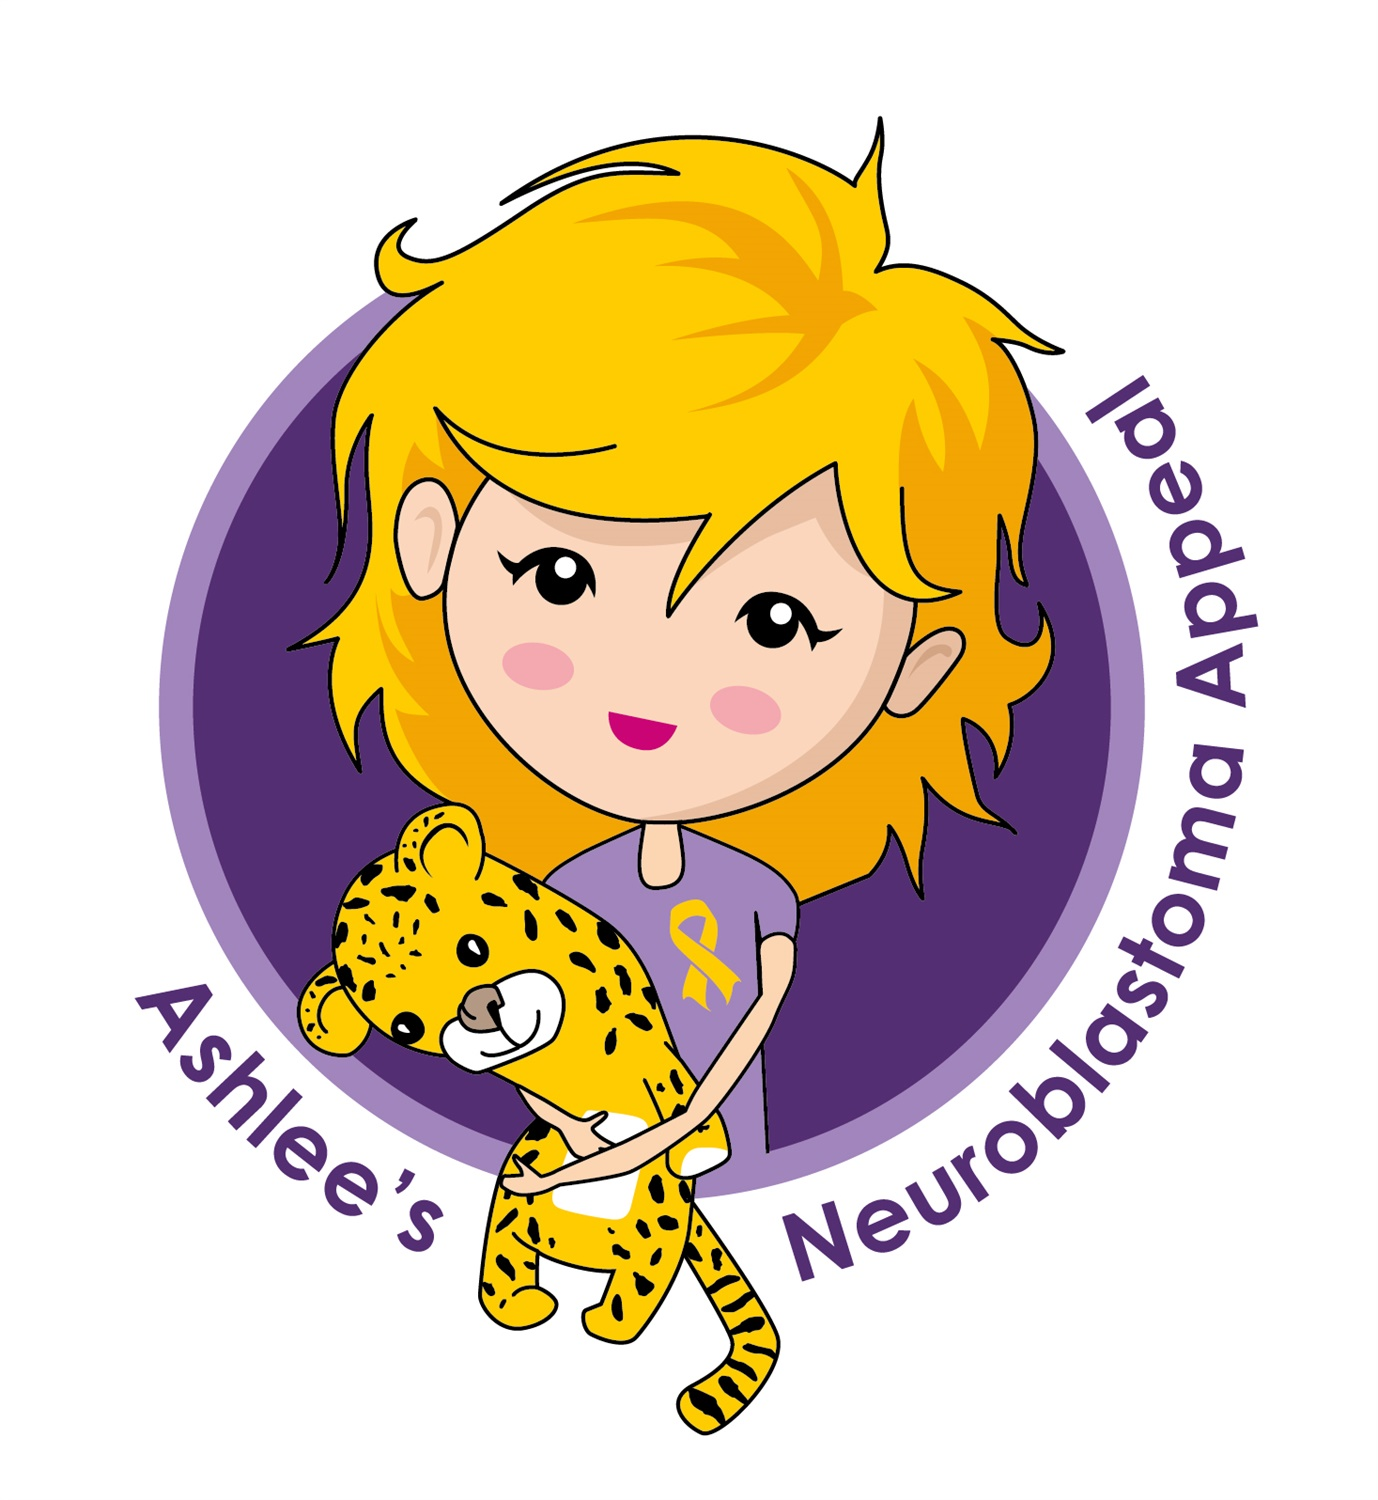 Ashlees Neuroblastoma Appeal Logo Ribbon